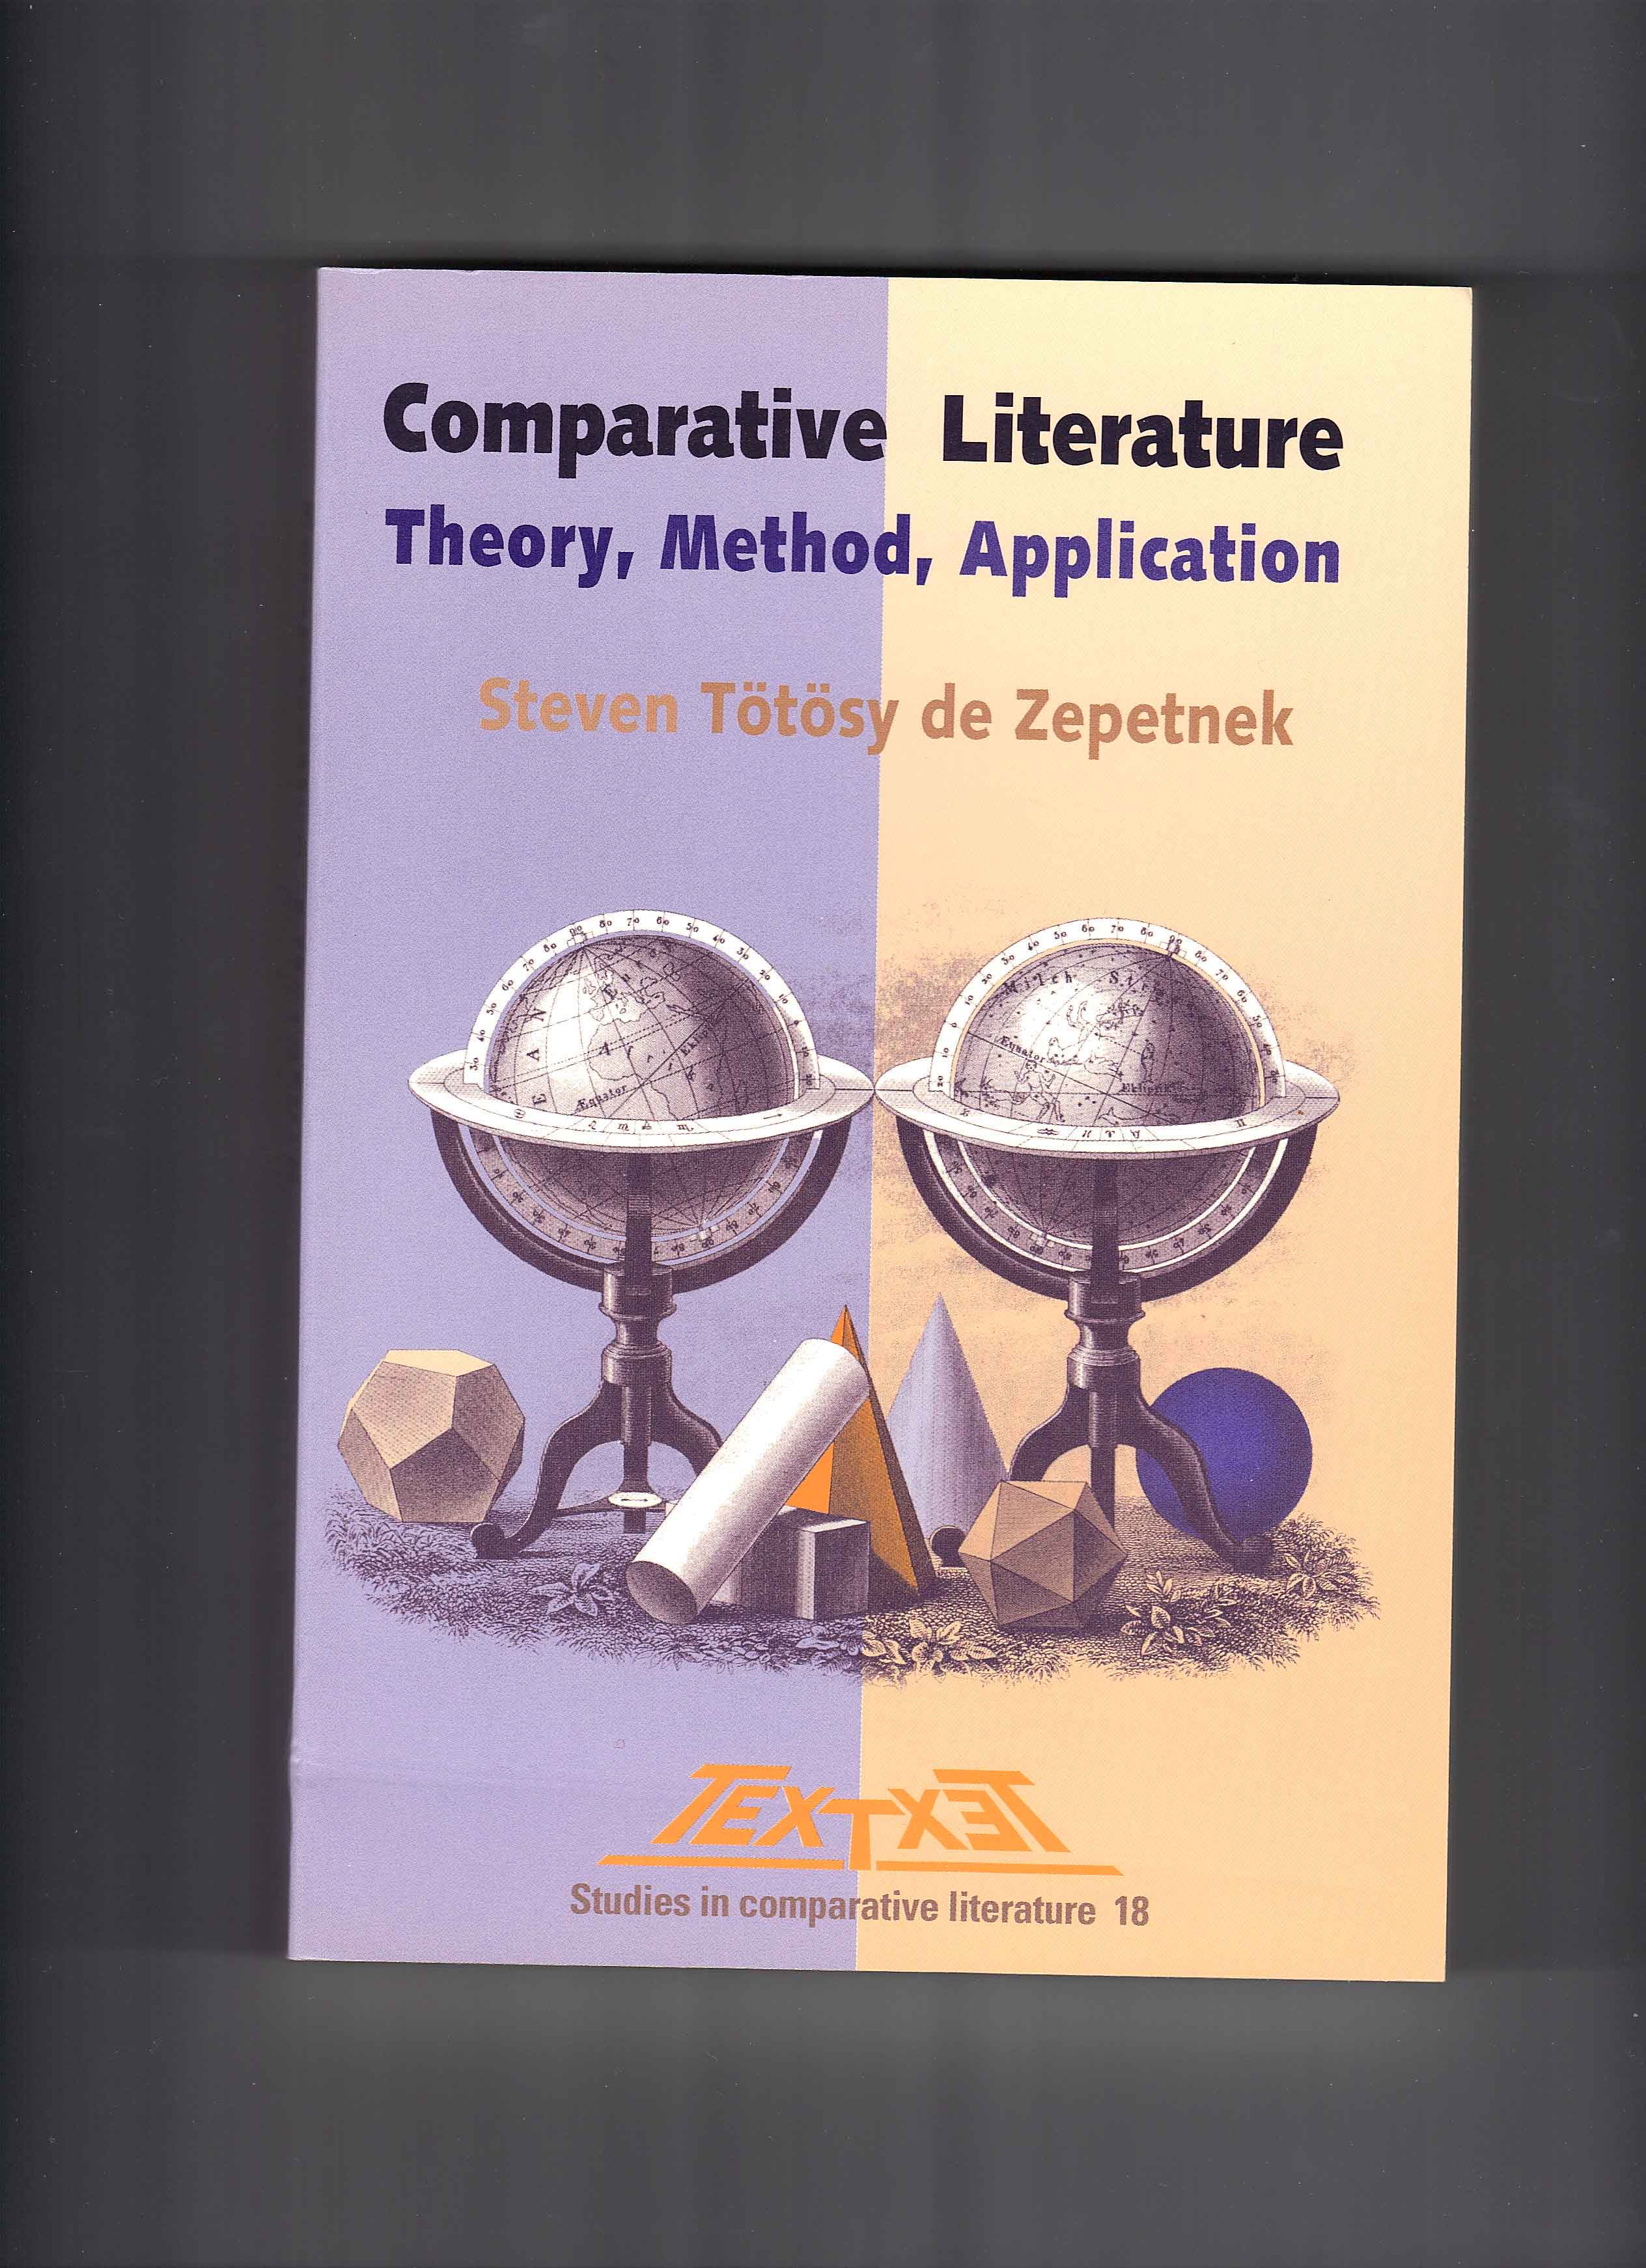 T�t�sy de Zepetnek, Steven. Comparative Literature: Theory, Method, Application. Amsterdam: Rodopi, 1998. & CLCWeb: Comparative Literature and Culture (Library) (2009. West Lafayette:Purdue University Press, 2009.